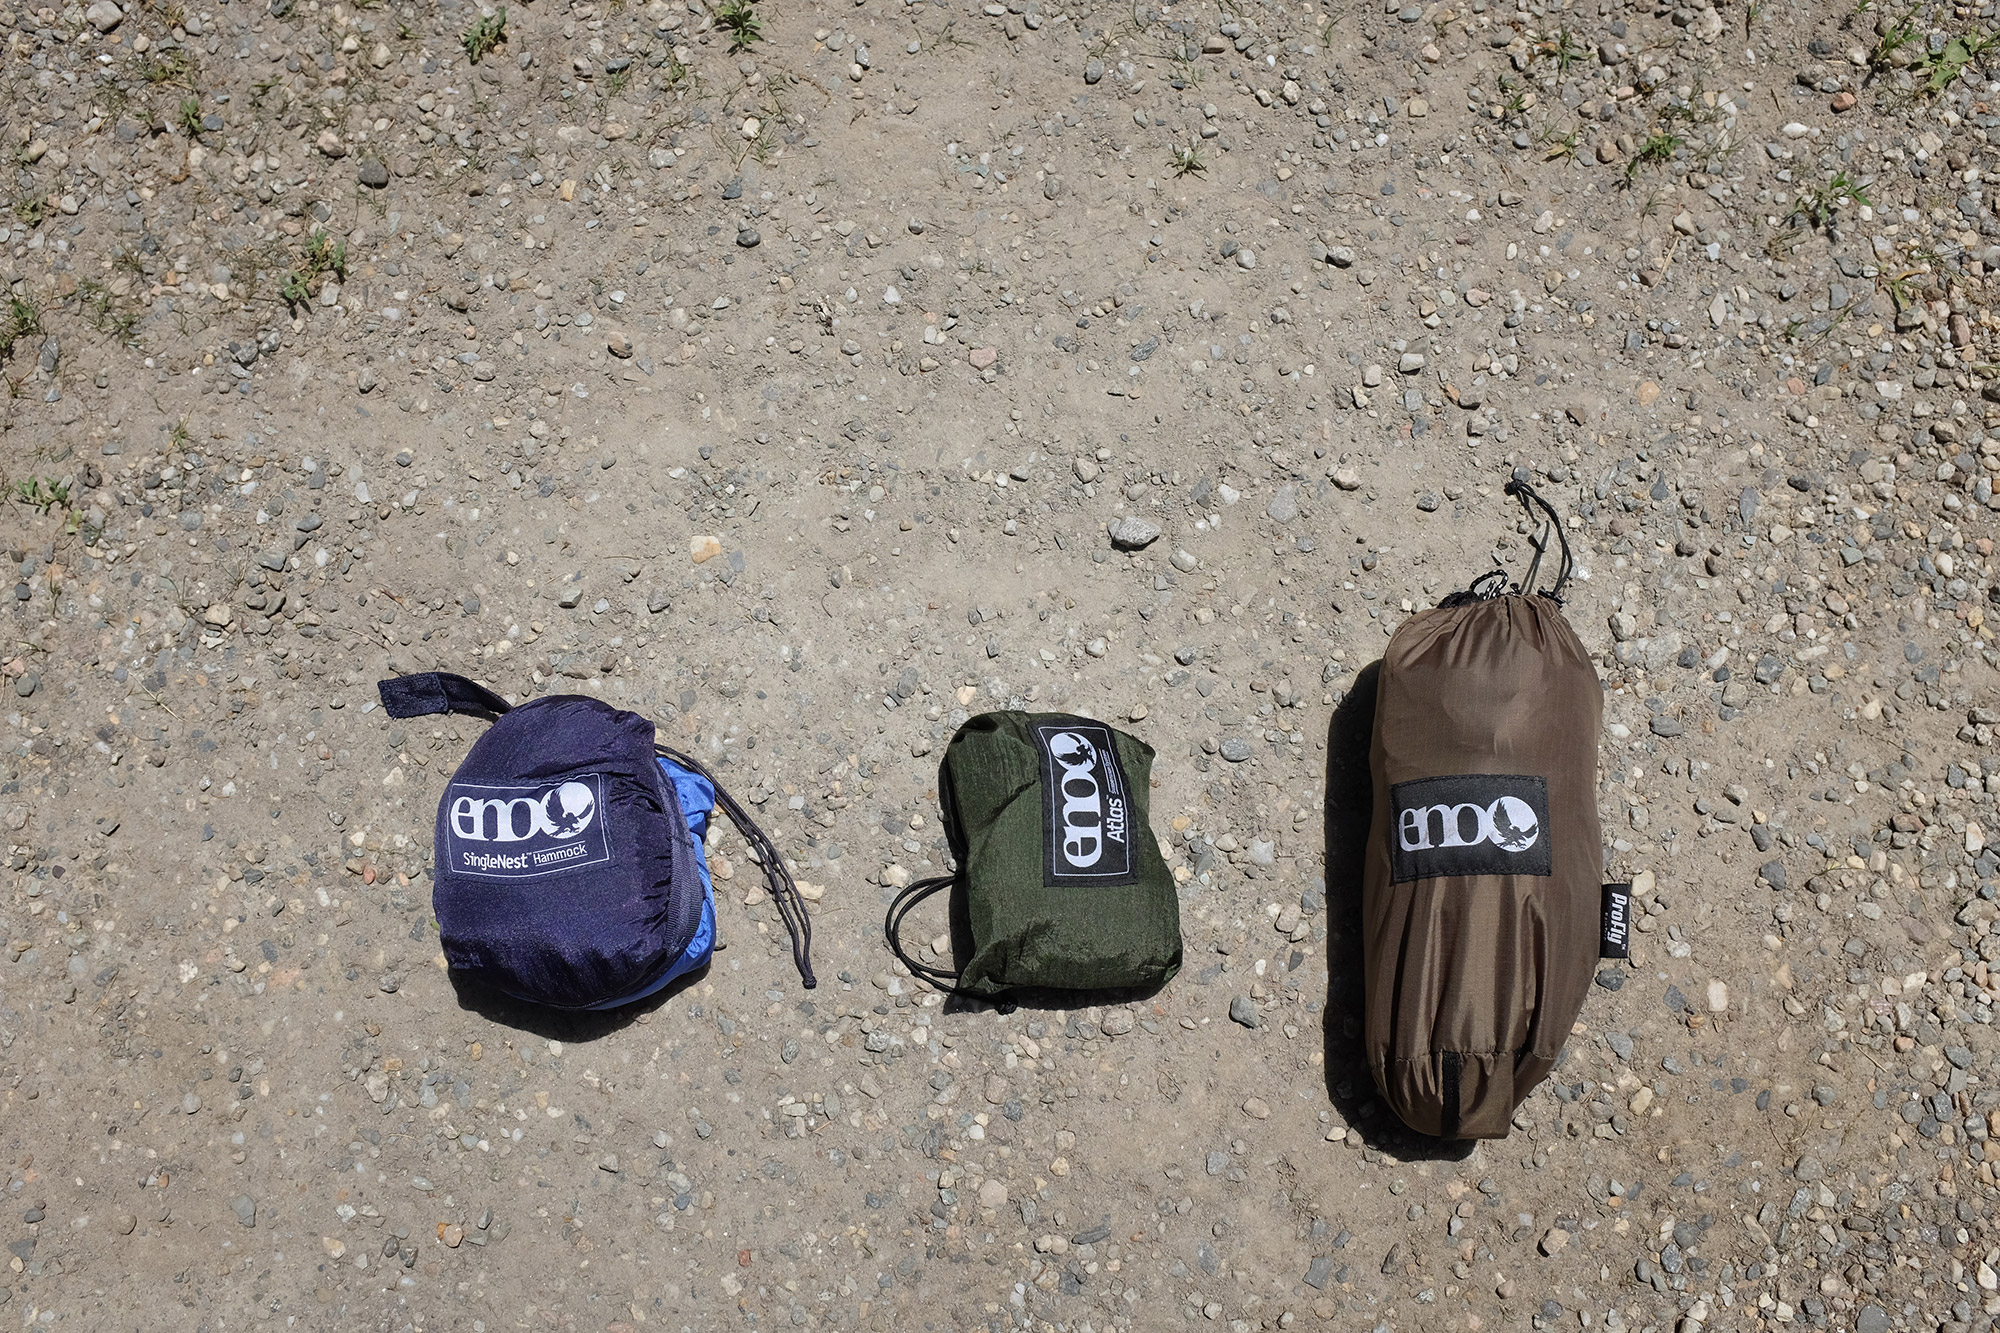 From left to right the packed ENO SingleNest hammock, Atlas Hammock Suspension System, and DryFly Rain Tarp, weighing in at 3lbs 1oz. | Credit: John Lepak